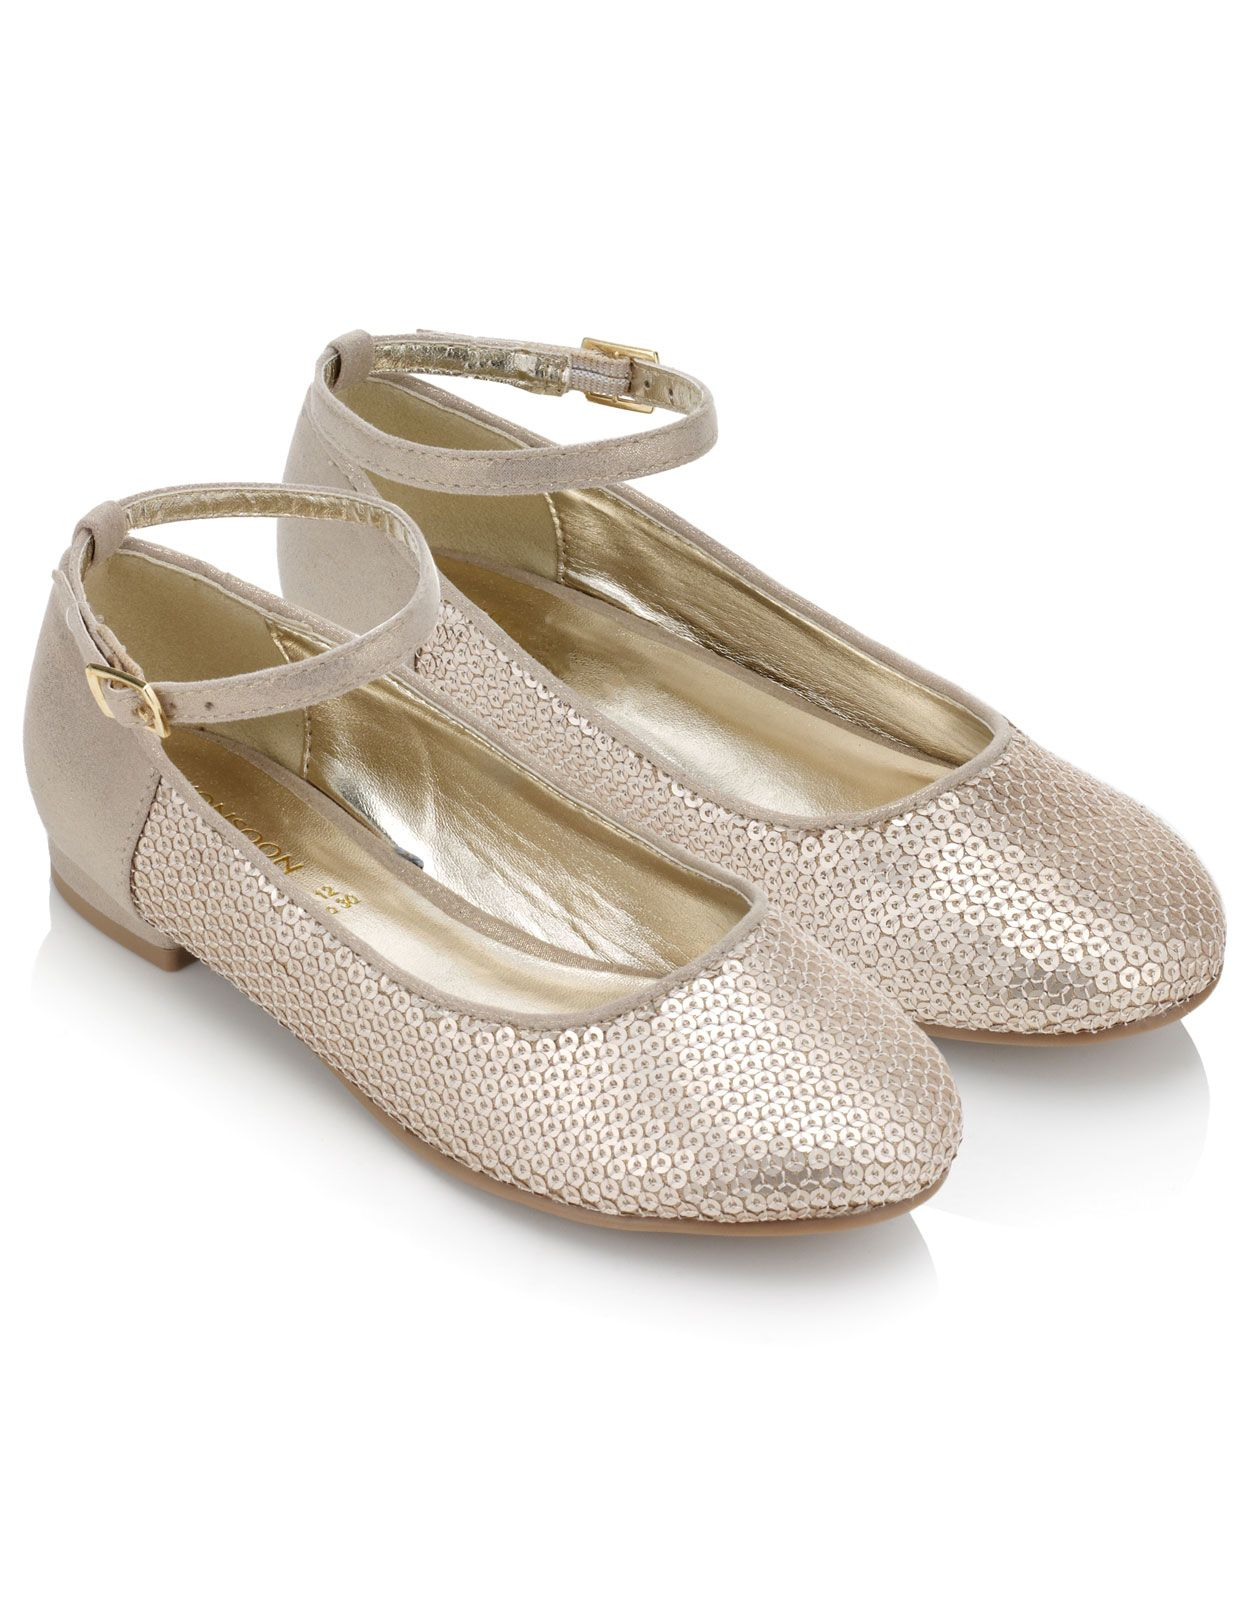 Girls wedding dress shoes  Matte Sequin Flat  Kids clothes that I adore  Pinterest  Wedding